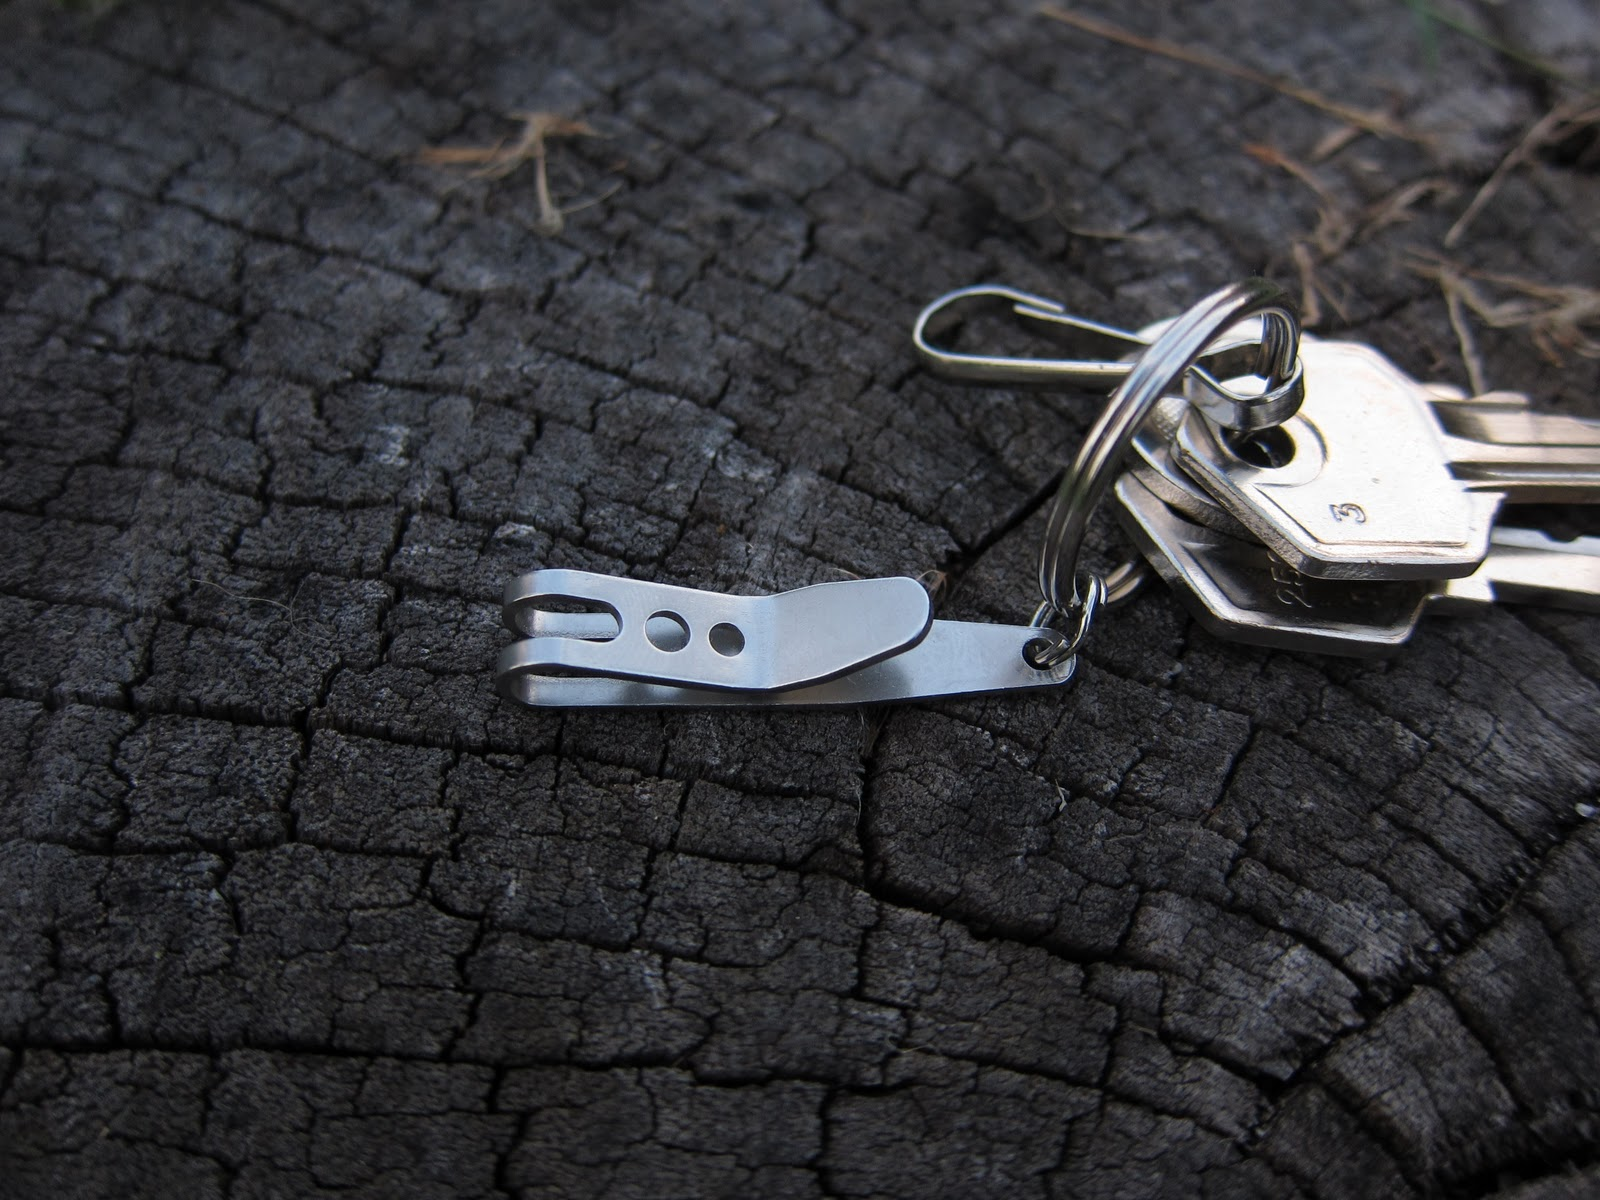 TEC Accessories P-7 suspension clip | Keychain Gadgets and